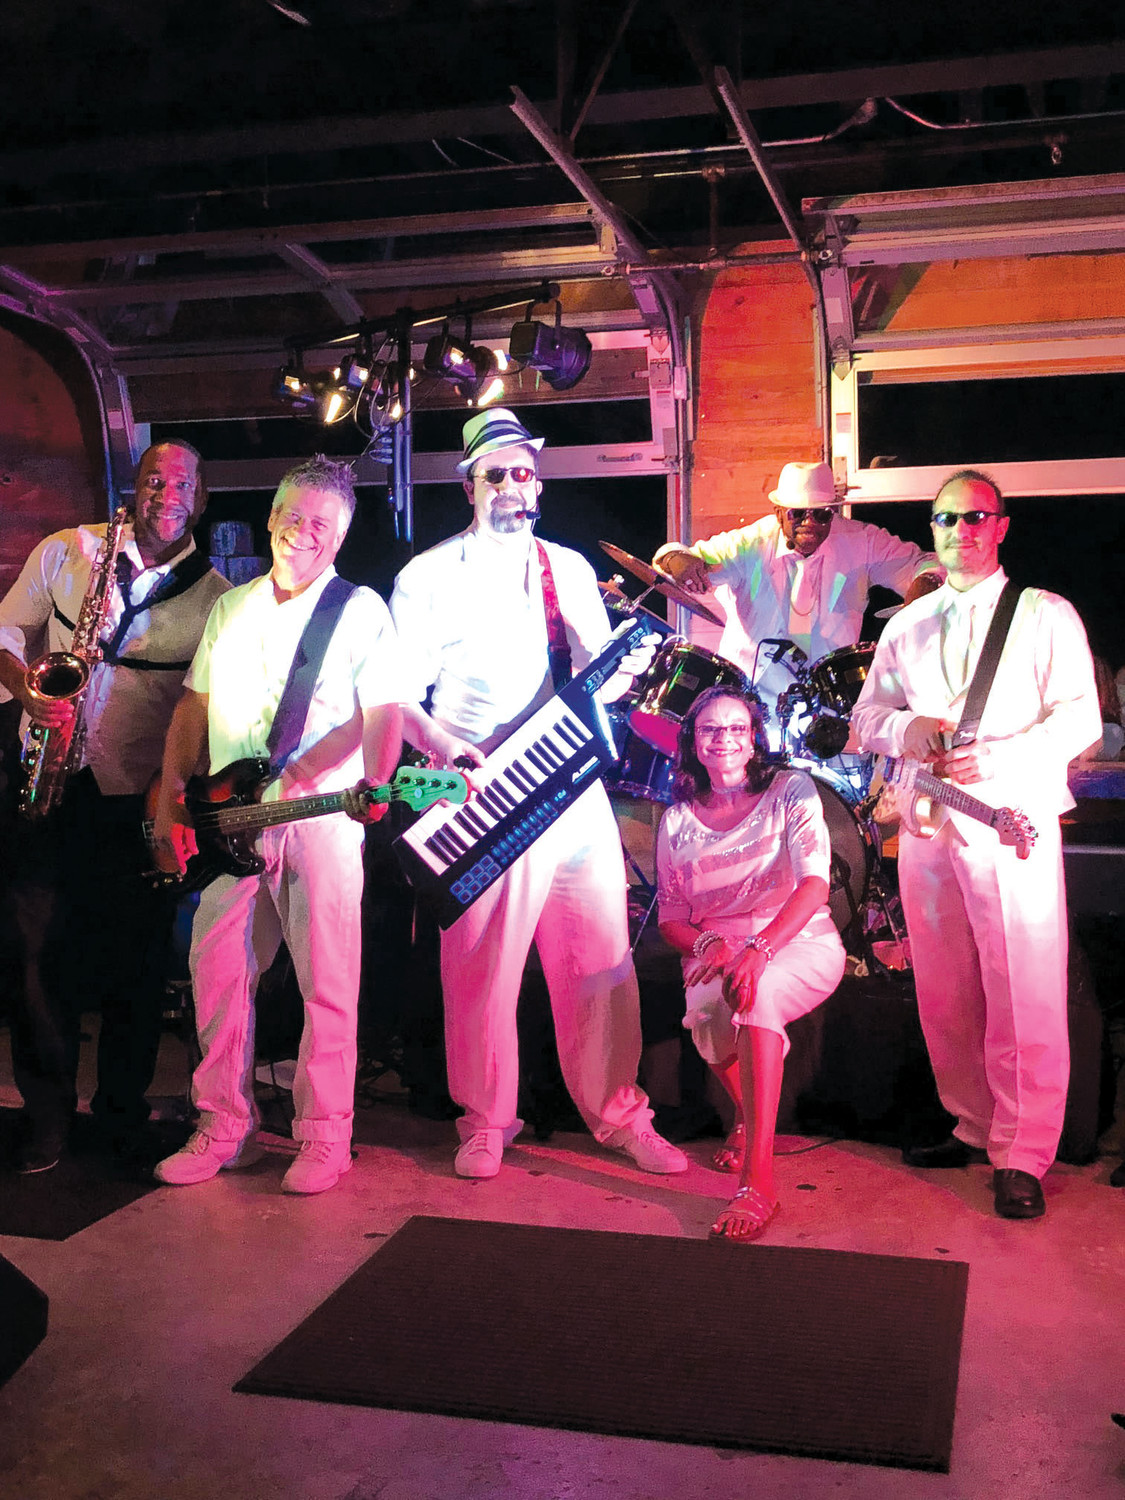 The Lenny Epps Revue will perform a variety of music from 7 to 10 tonight when the Erwin Area Chamber of Commerce hosts the Blue Jean Boogie on H Stree in downtown Erwin. Admission is free. The event is a culmination to this week's Restaurant Week in Erwin and also will feature food, a 50/50 raffle, info booths set up by the sponsors and police vehicles and fire trucks on display. Zaxby's will be there selling Nibblers and iced tea with part of the proceeds going back to the chamber.